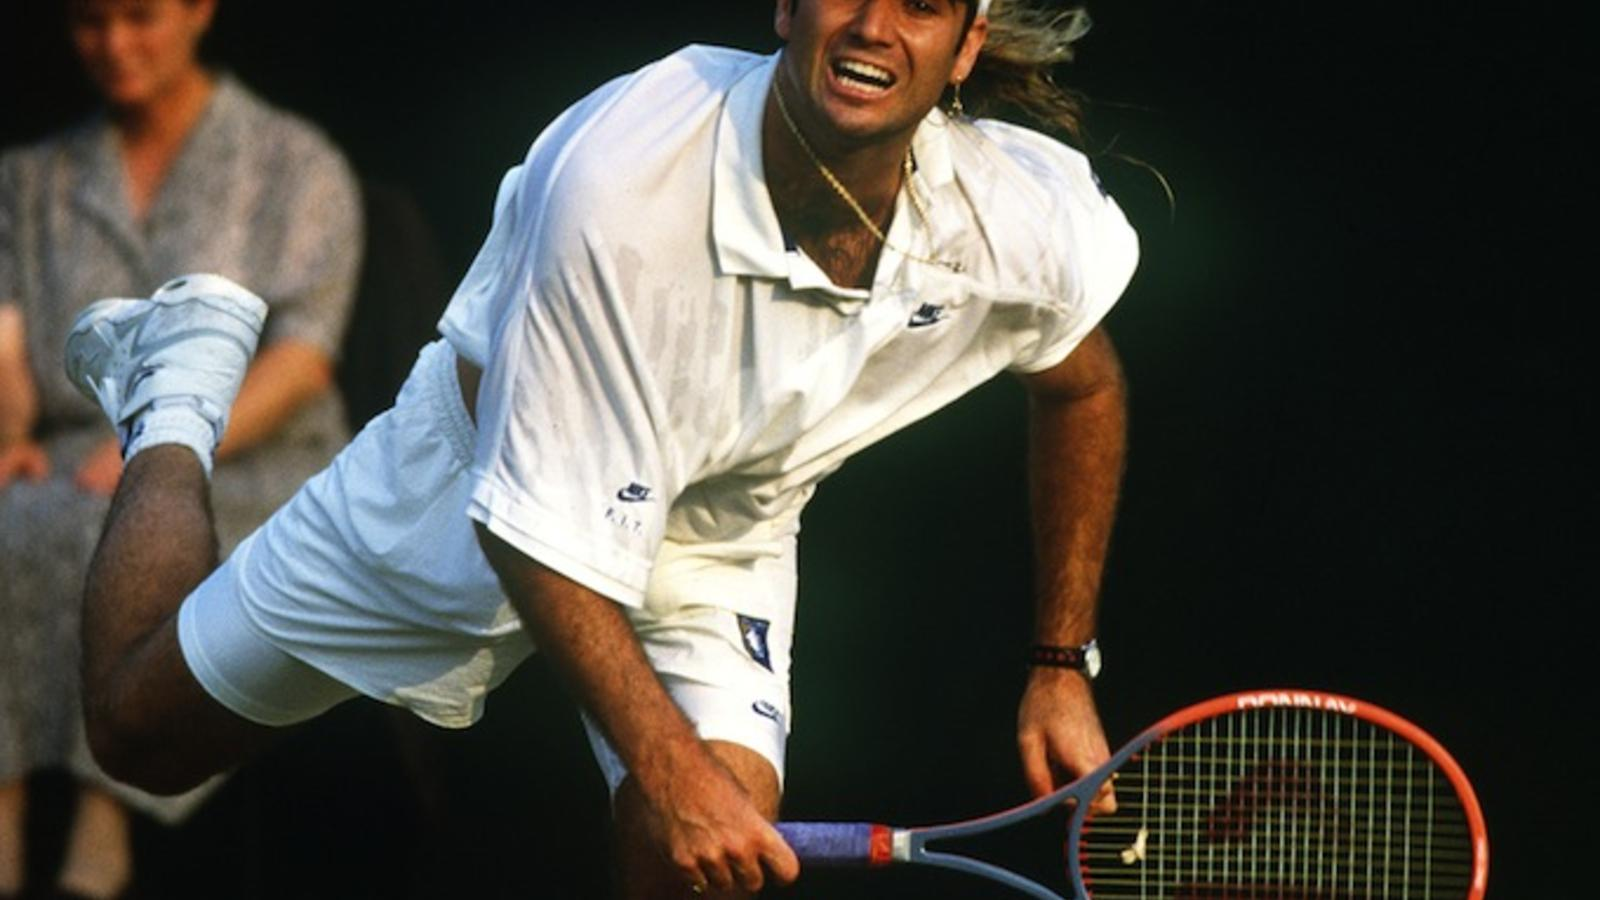 Nike News - Tennis Icon Andre Agassi Rejoins Nike